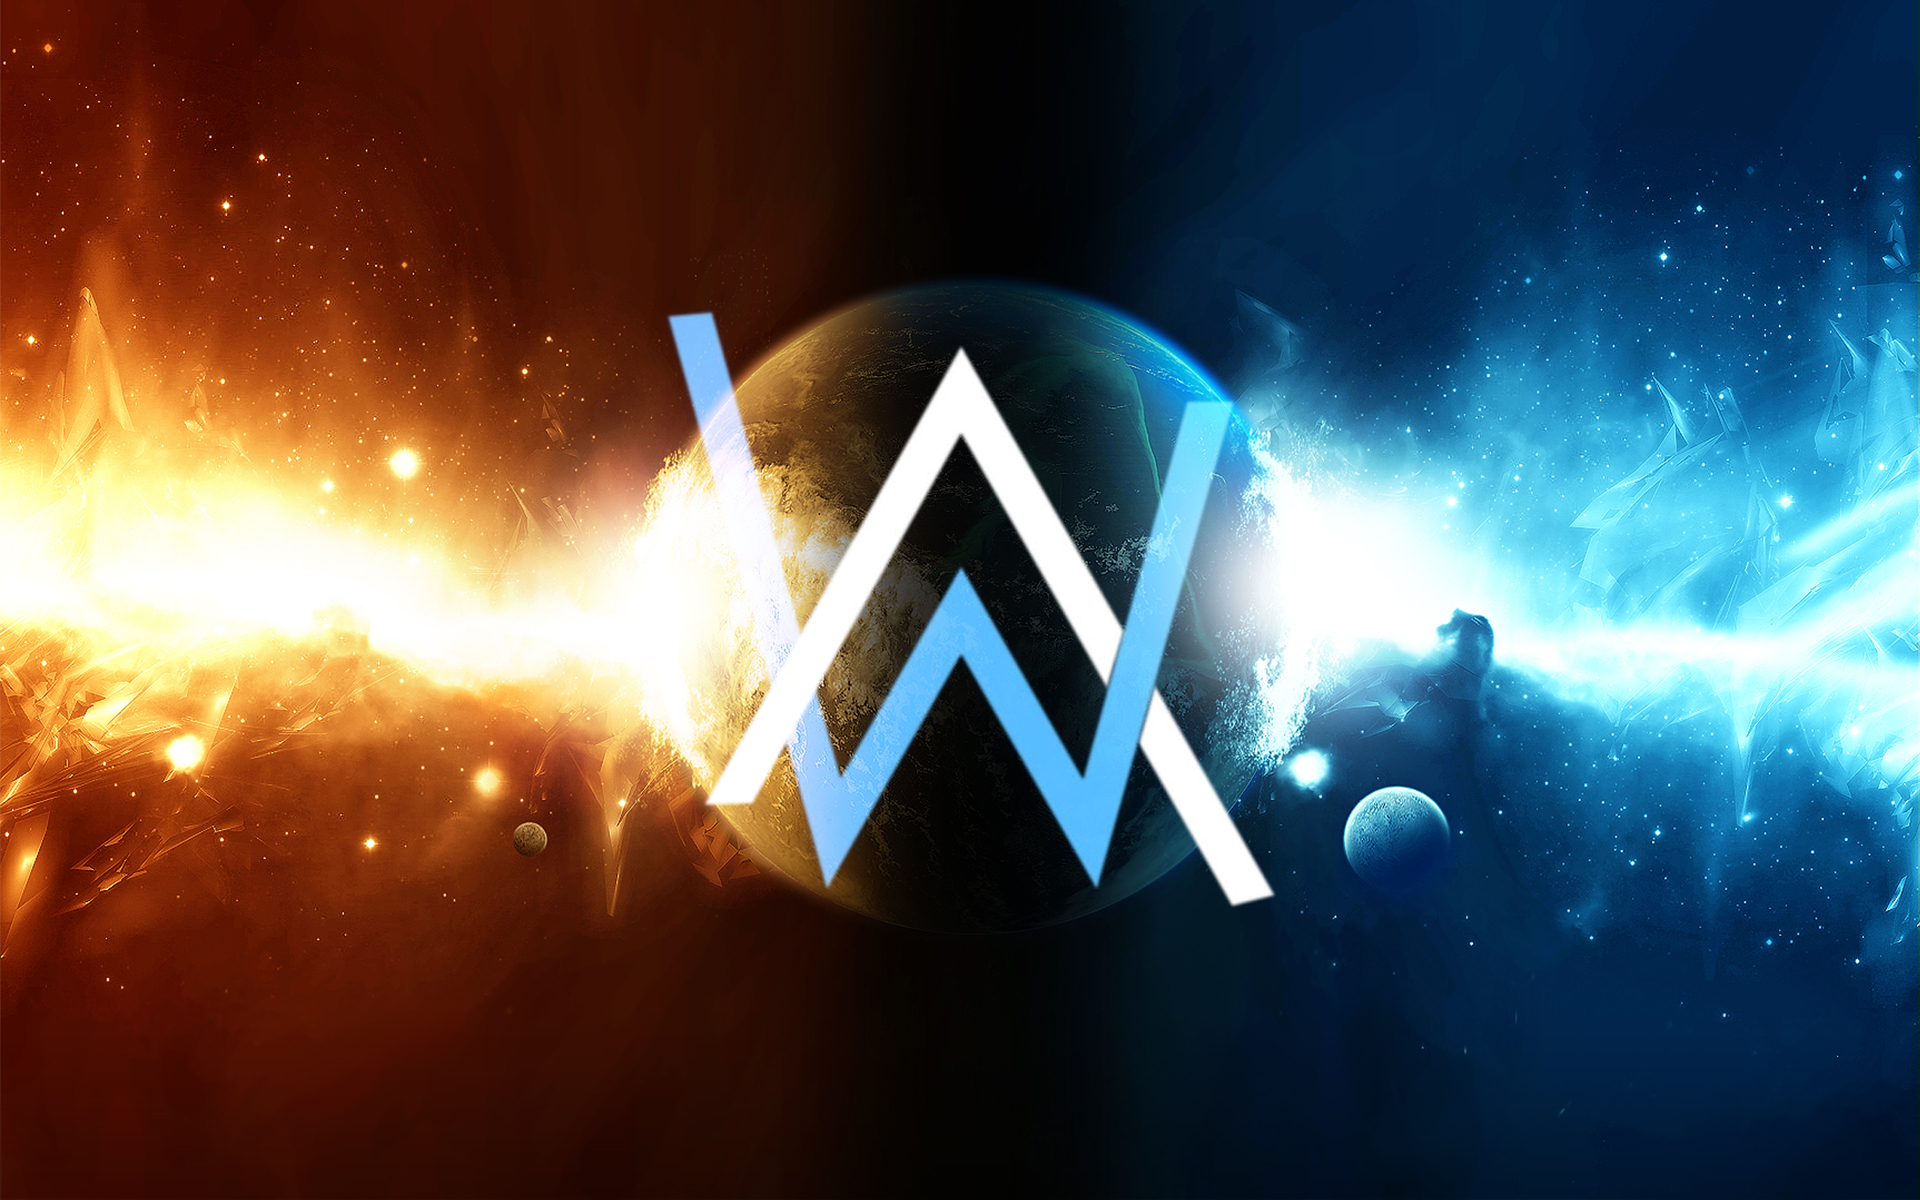 alan walker hd wallpapers